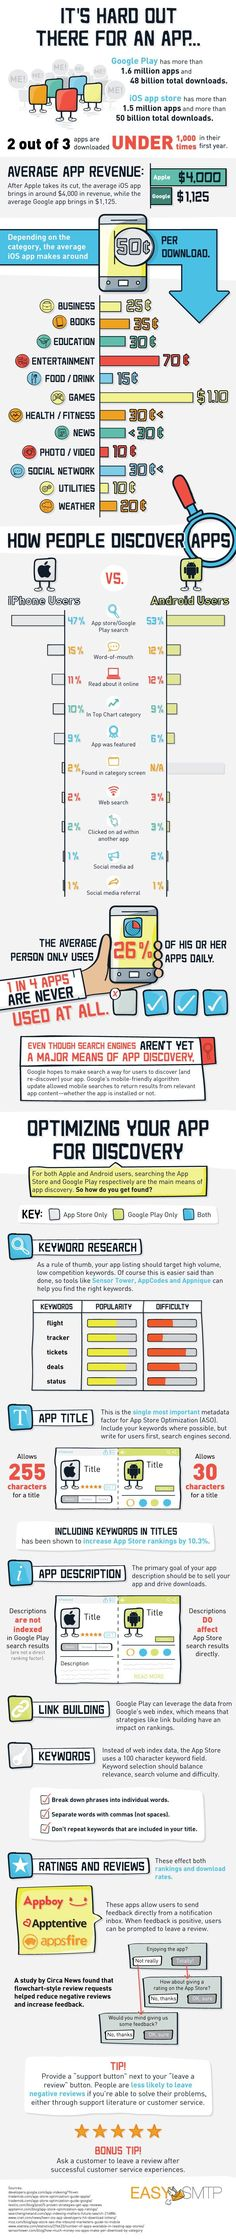 It's Hard Out There for an App #Infographic #Apps #iphoneappstore,